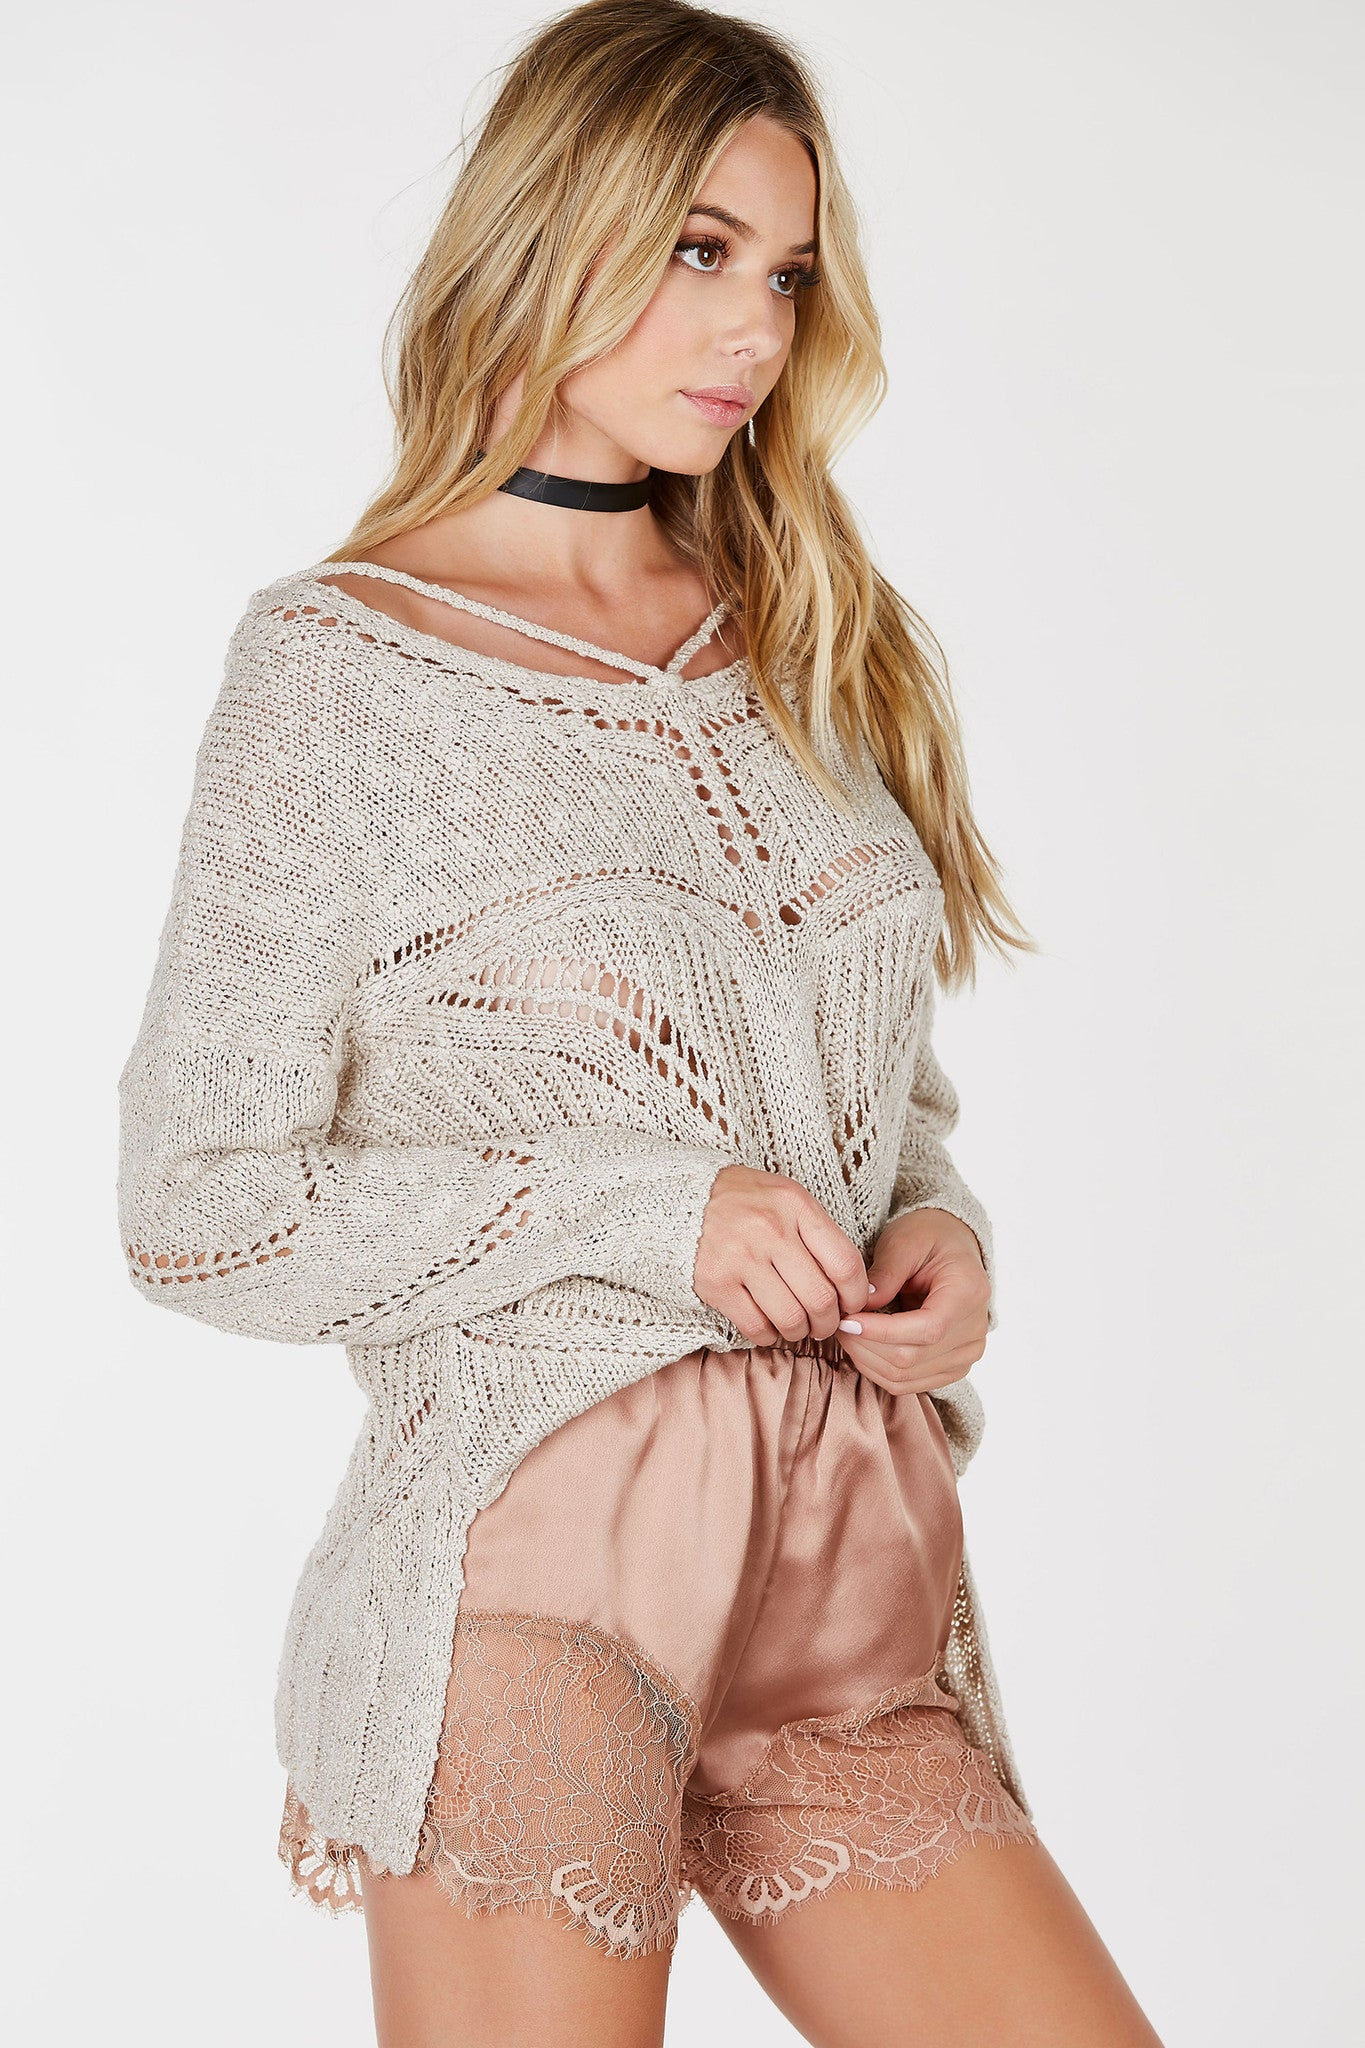 A great layering piece for Fall. This loose knit sweater features peek-a-boo patterns throughout with multi strap detailing in both front and back. Comfortable loose fit at body with slim fit long sleeves. Scooped back with slit detailing for a chic finish.